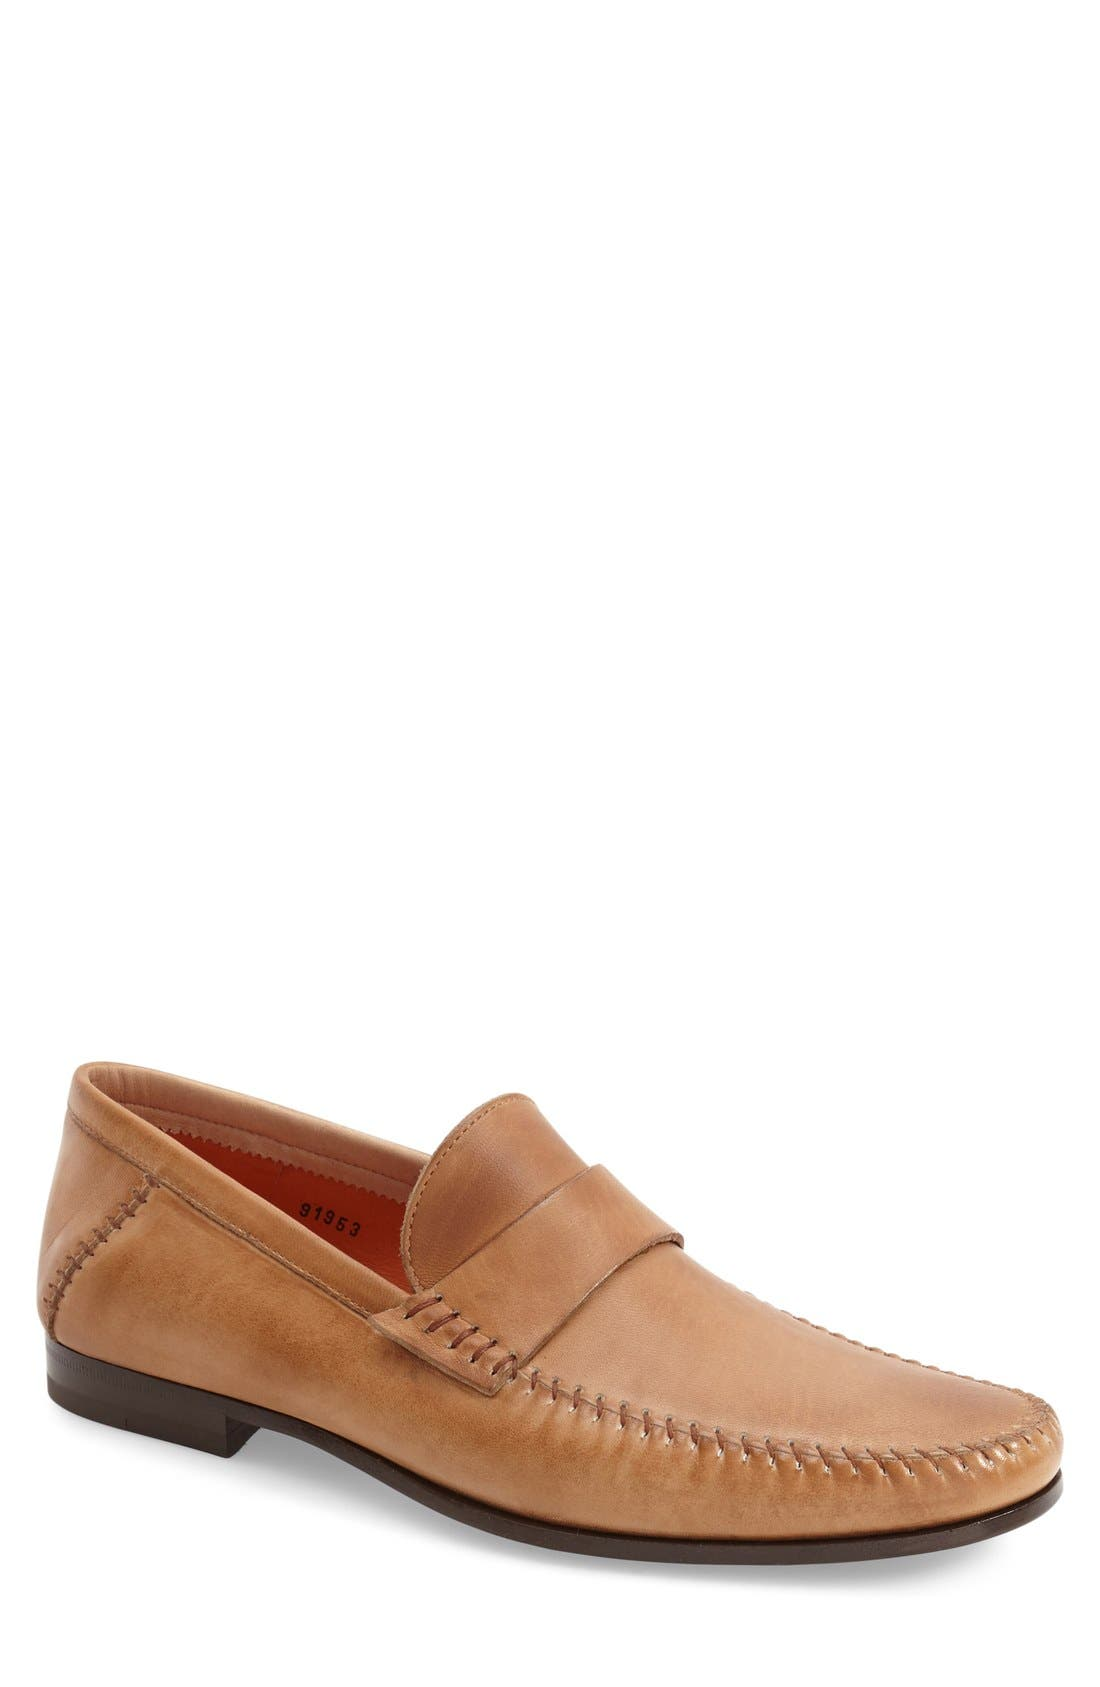 'Paine' Leather Loafer,                         Main,                         color, Tan